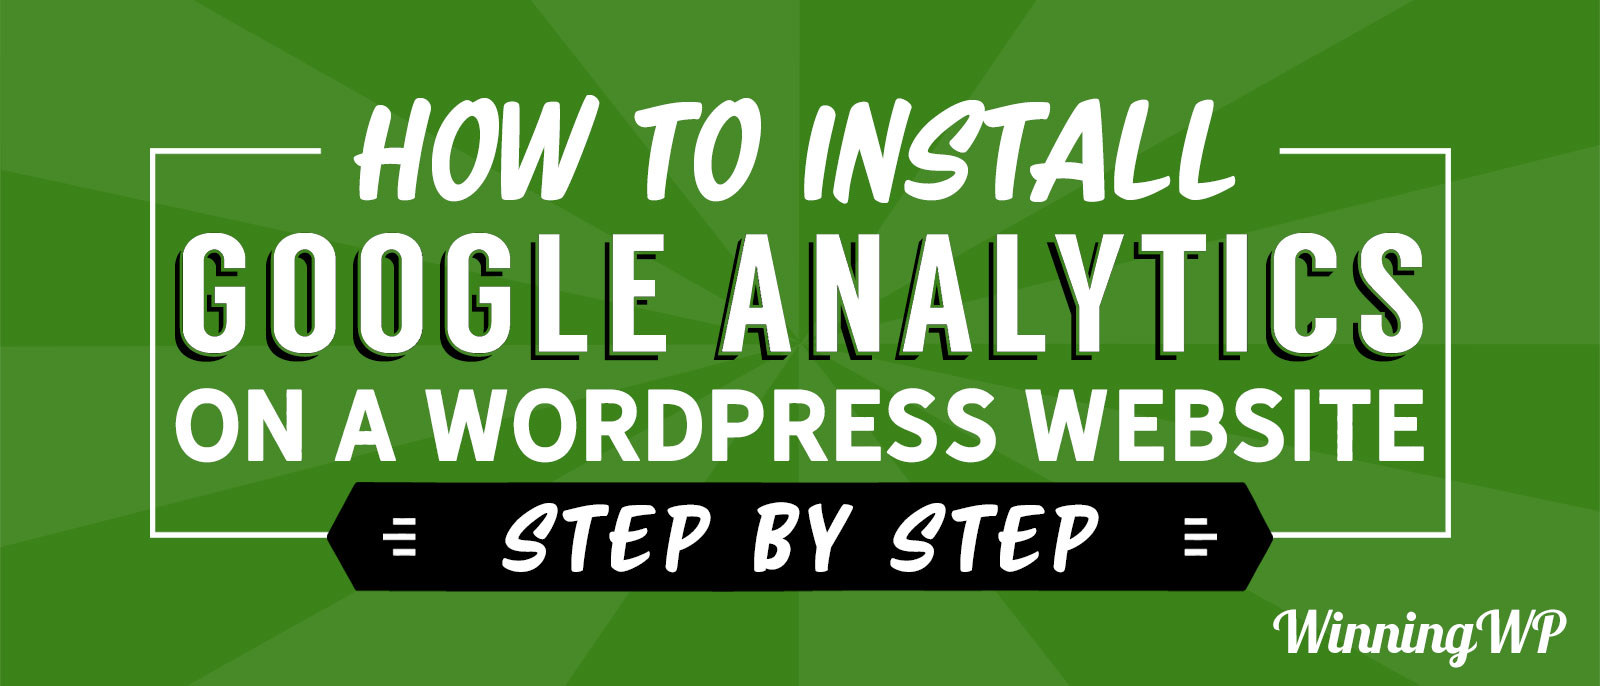 how-to-install-google-analytics-on-a-wordpress-website